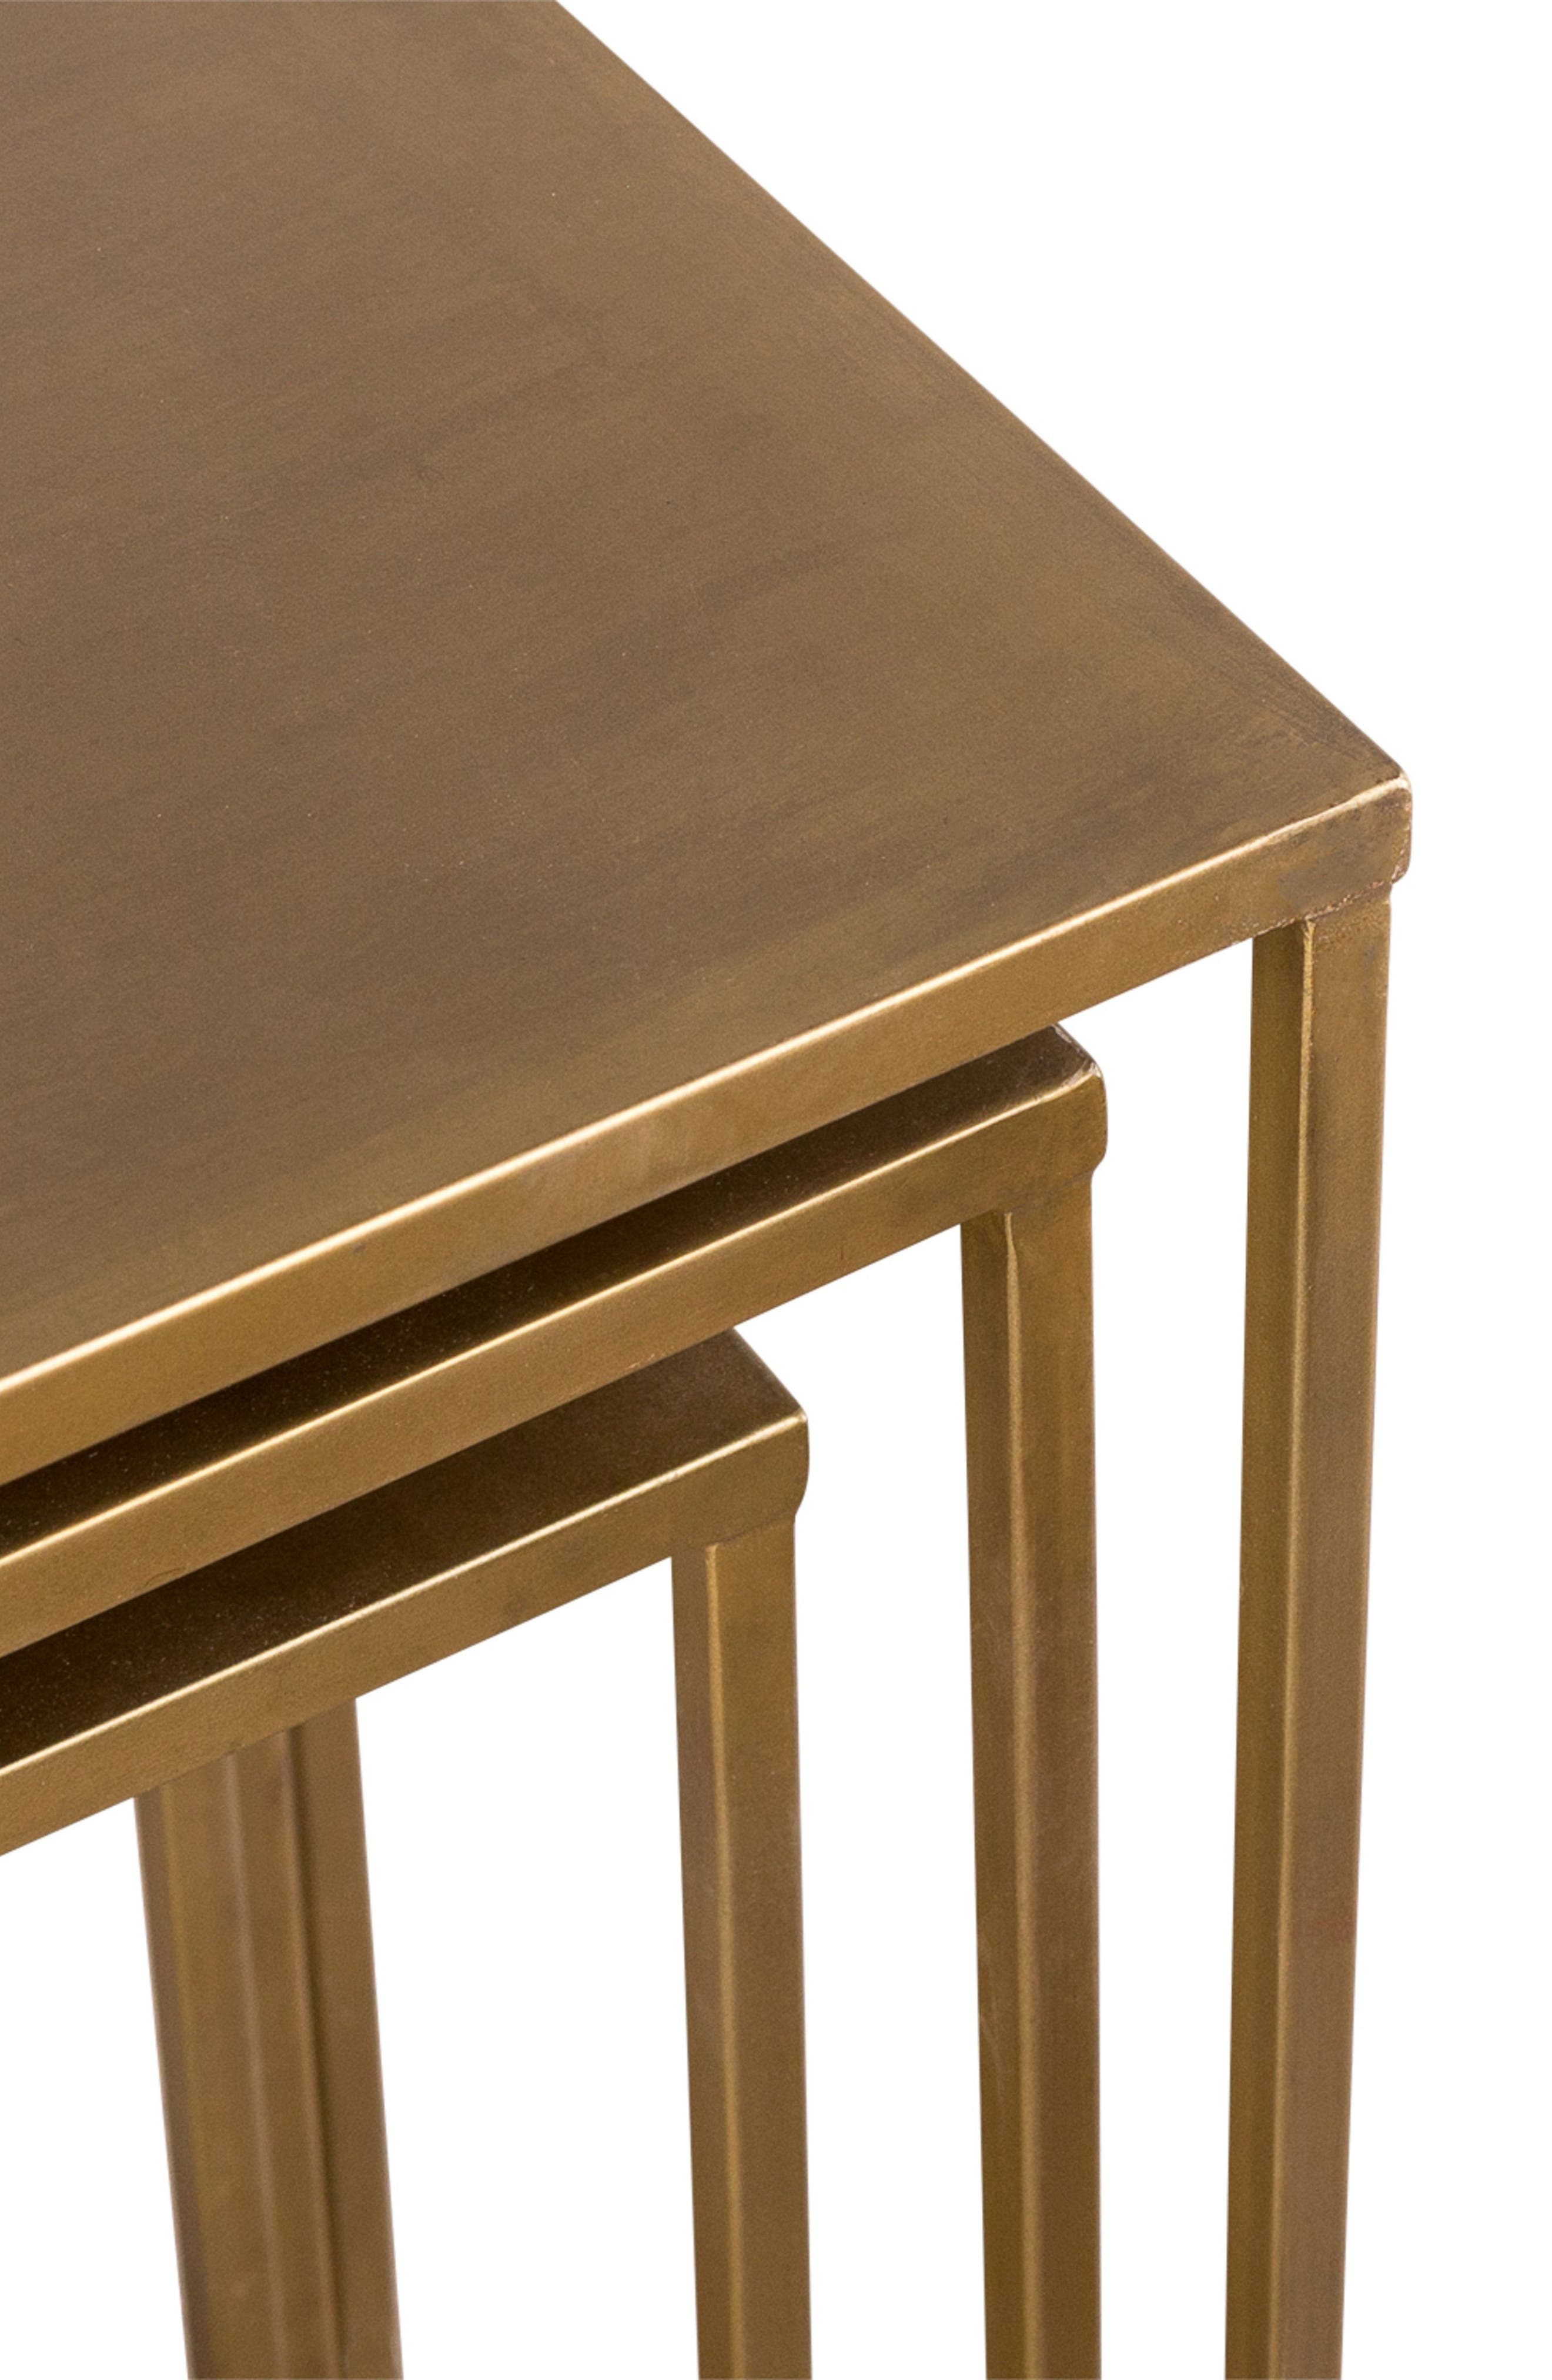 Pollock Set of 3 Tall Nesting Tables,                             Alternate thumbnail 2, color,                             Brass